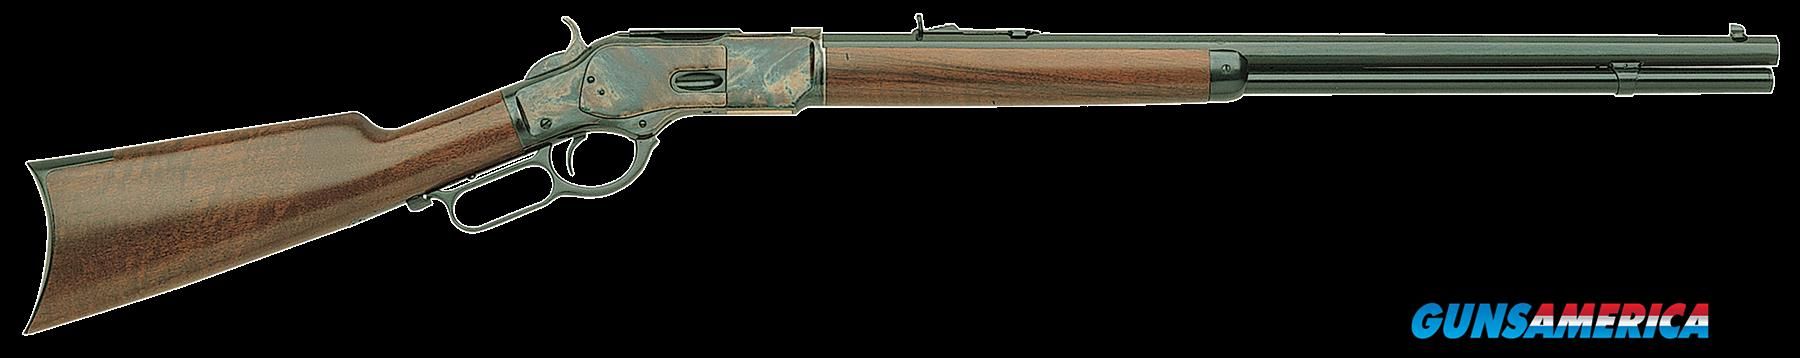 "Taylors and Company 200E 1873 Sporting Lever 45 Colt (LC) 20"" 10+1 Walnut Stk Blued Barrel/Case  Guns > Rifles > Taylors & Co. Rifles > Winchester Lever Type"